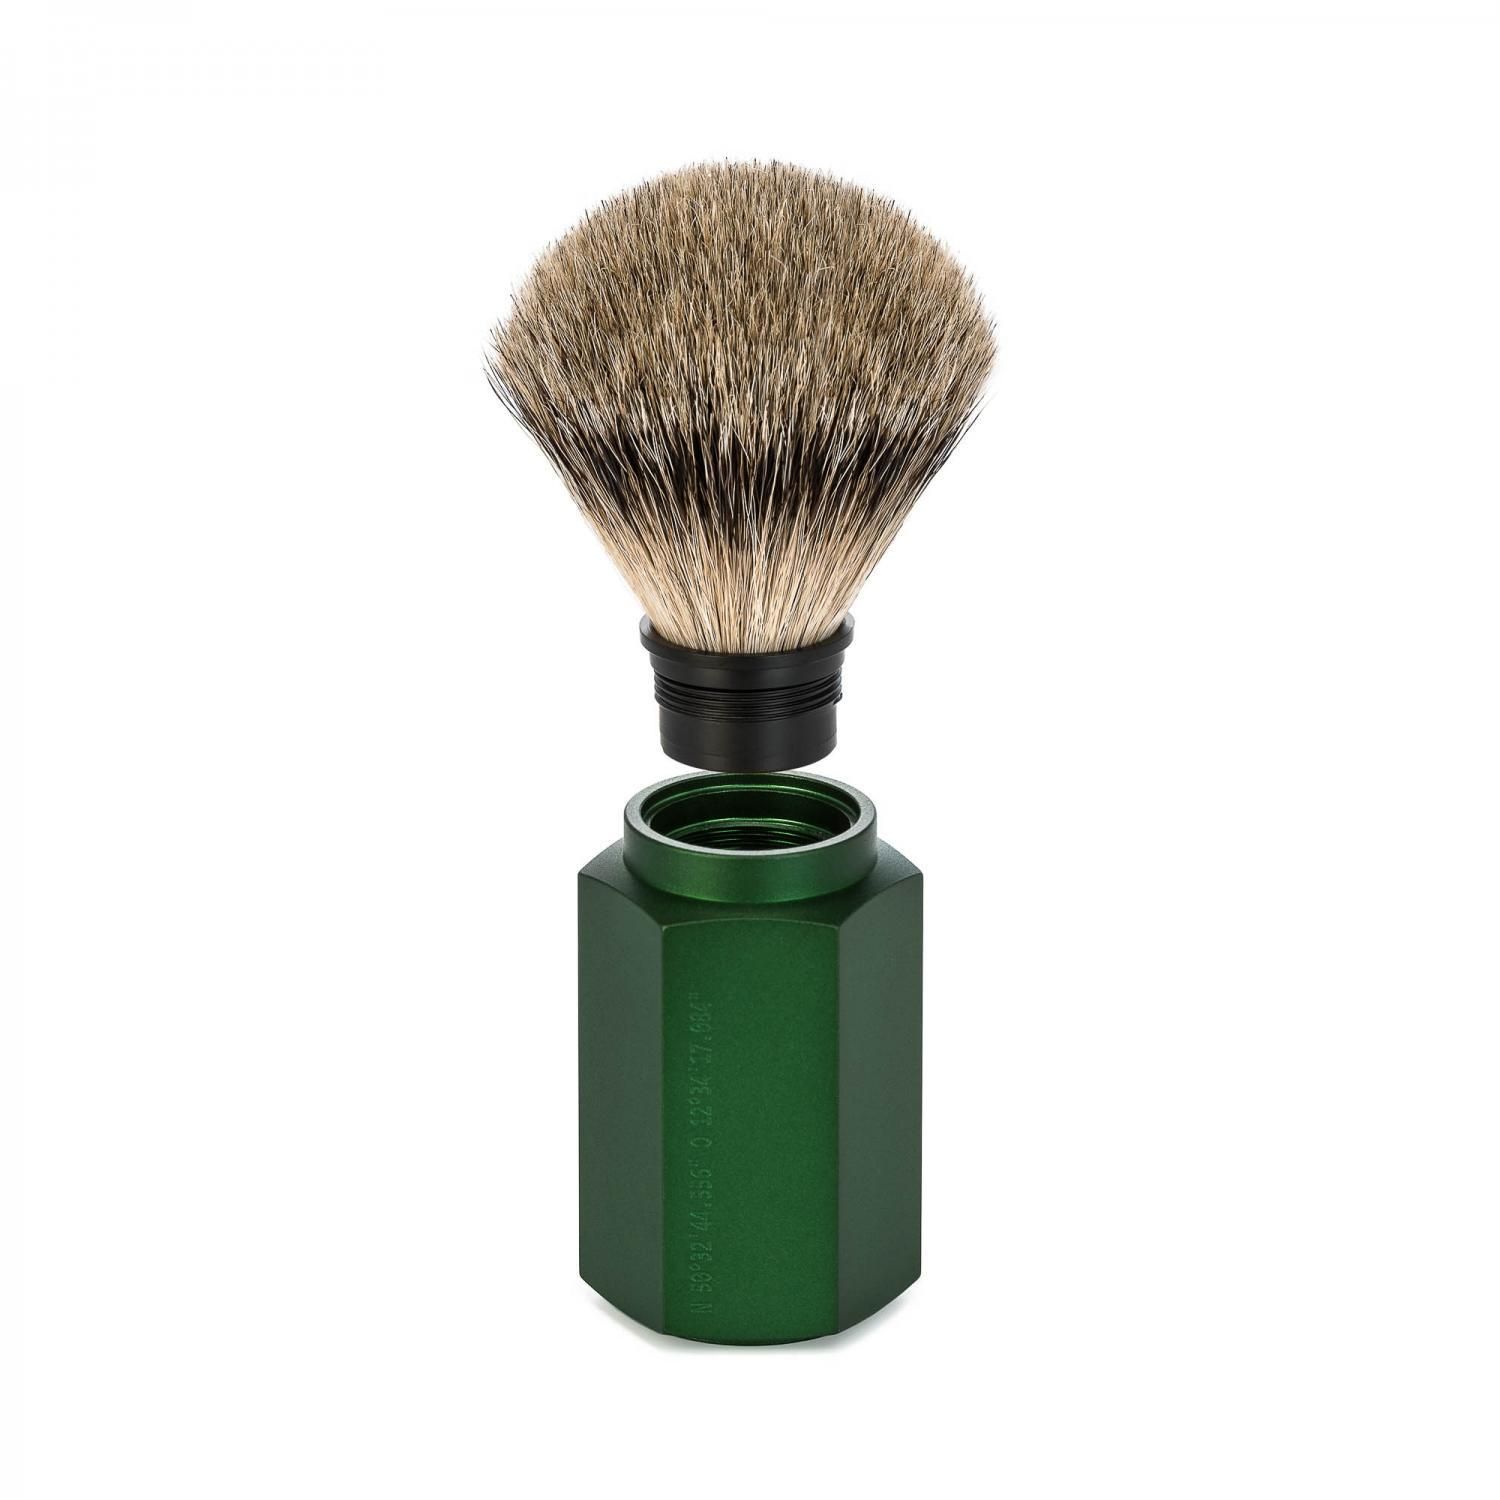 MUHLE HEXAGON Forest Silvertip Badger Shaving Brush